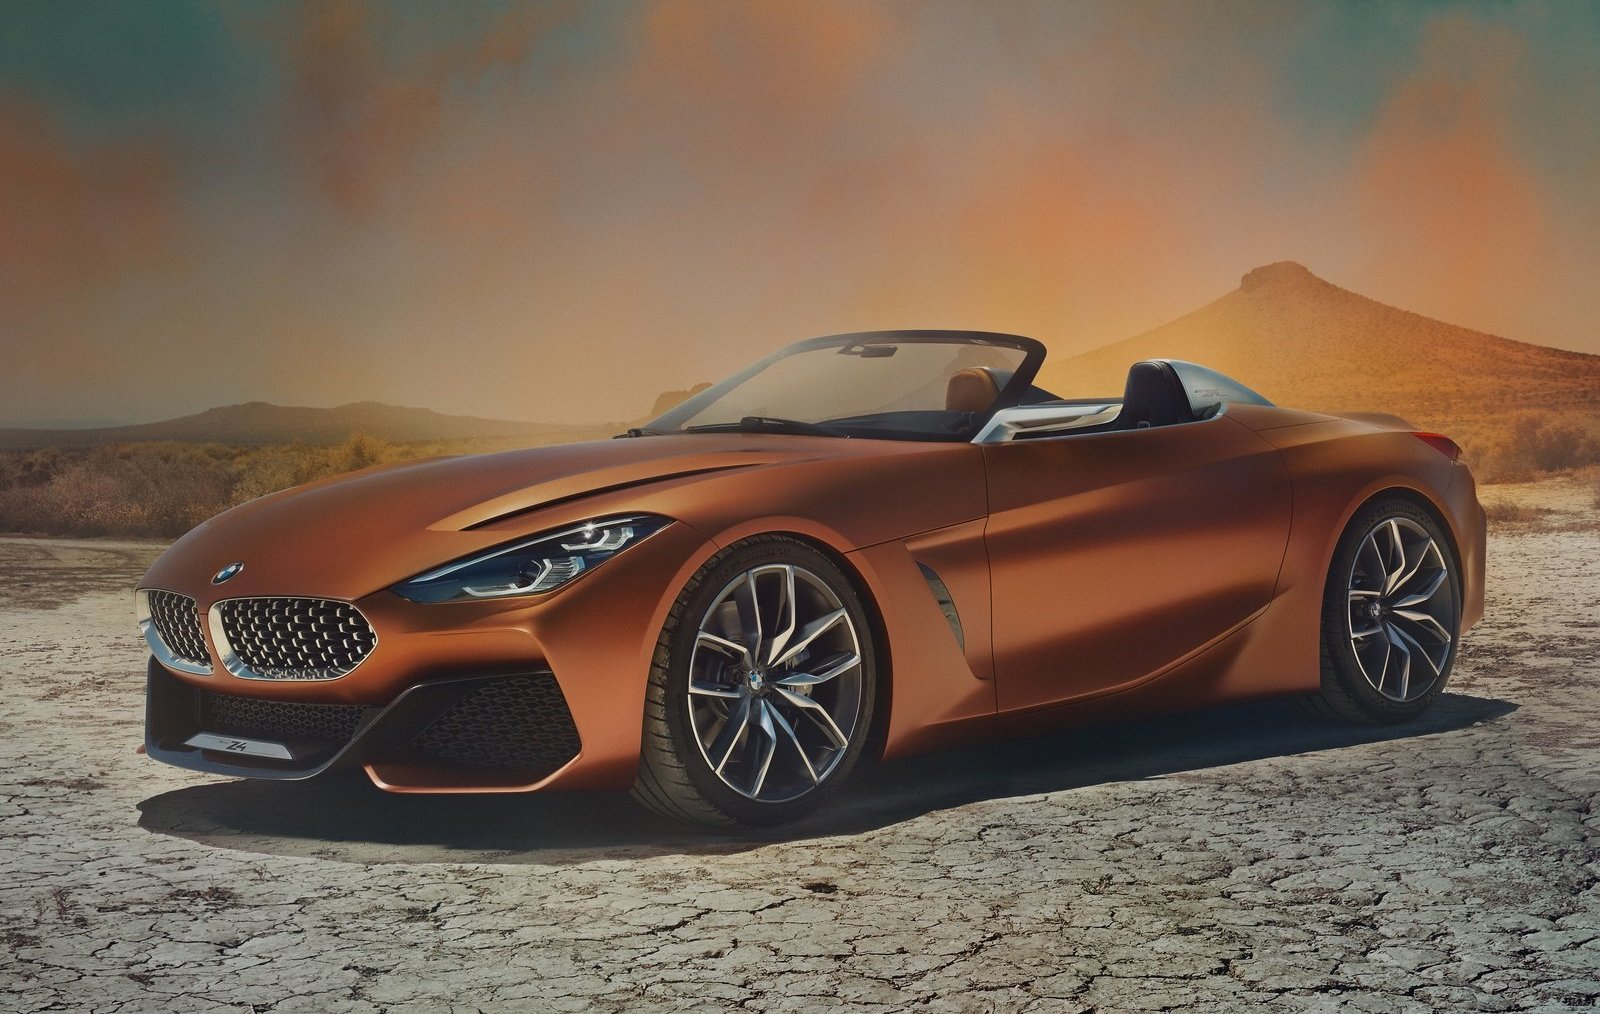 Mercedes Benz Long Beach >> BMW Z4 Concept revealed, production model coming in 2018 | PerformanceDrive